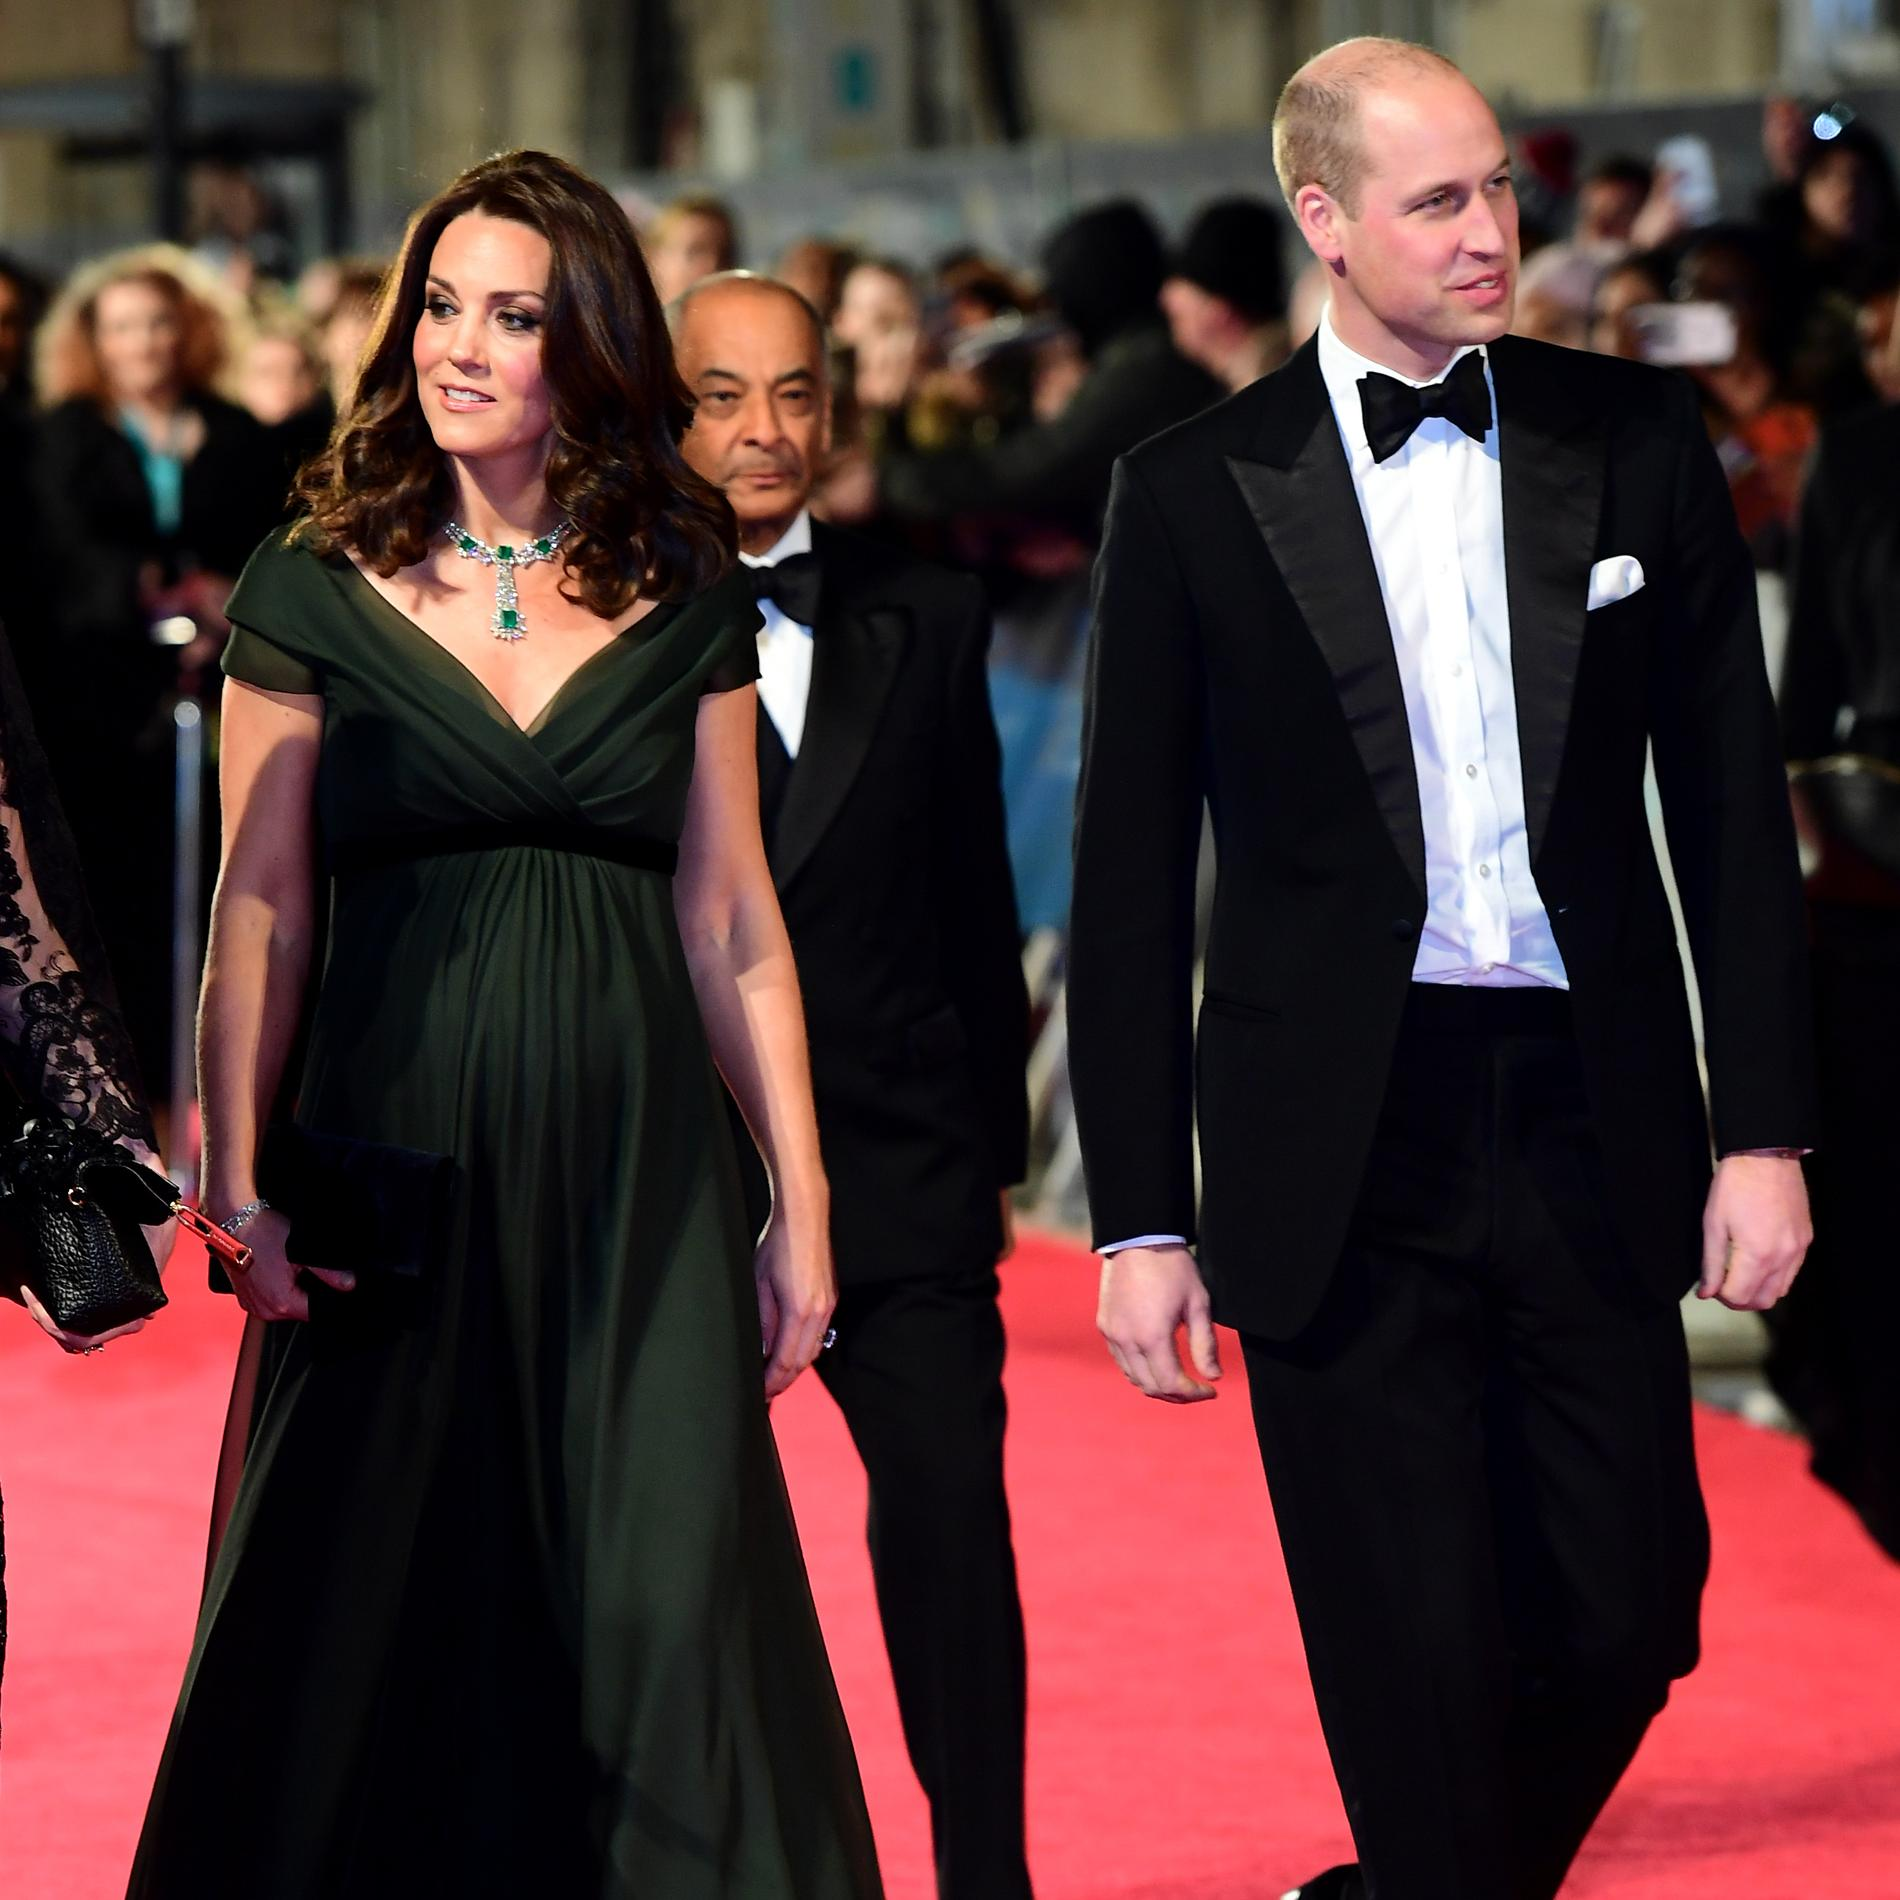 Bafta 2018 : les actrices en robes noires pour Time's Up - Kate Middleton et le prince William